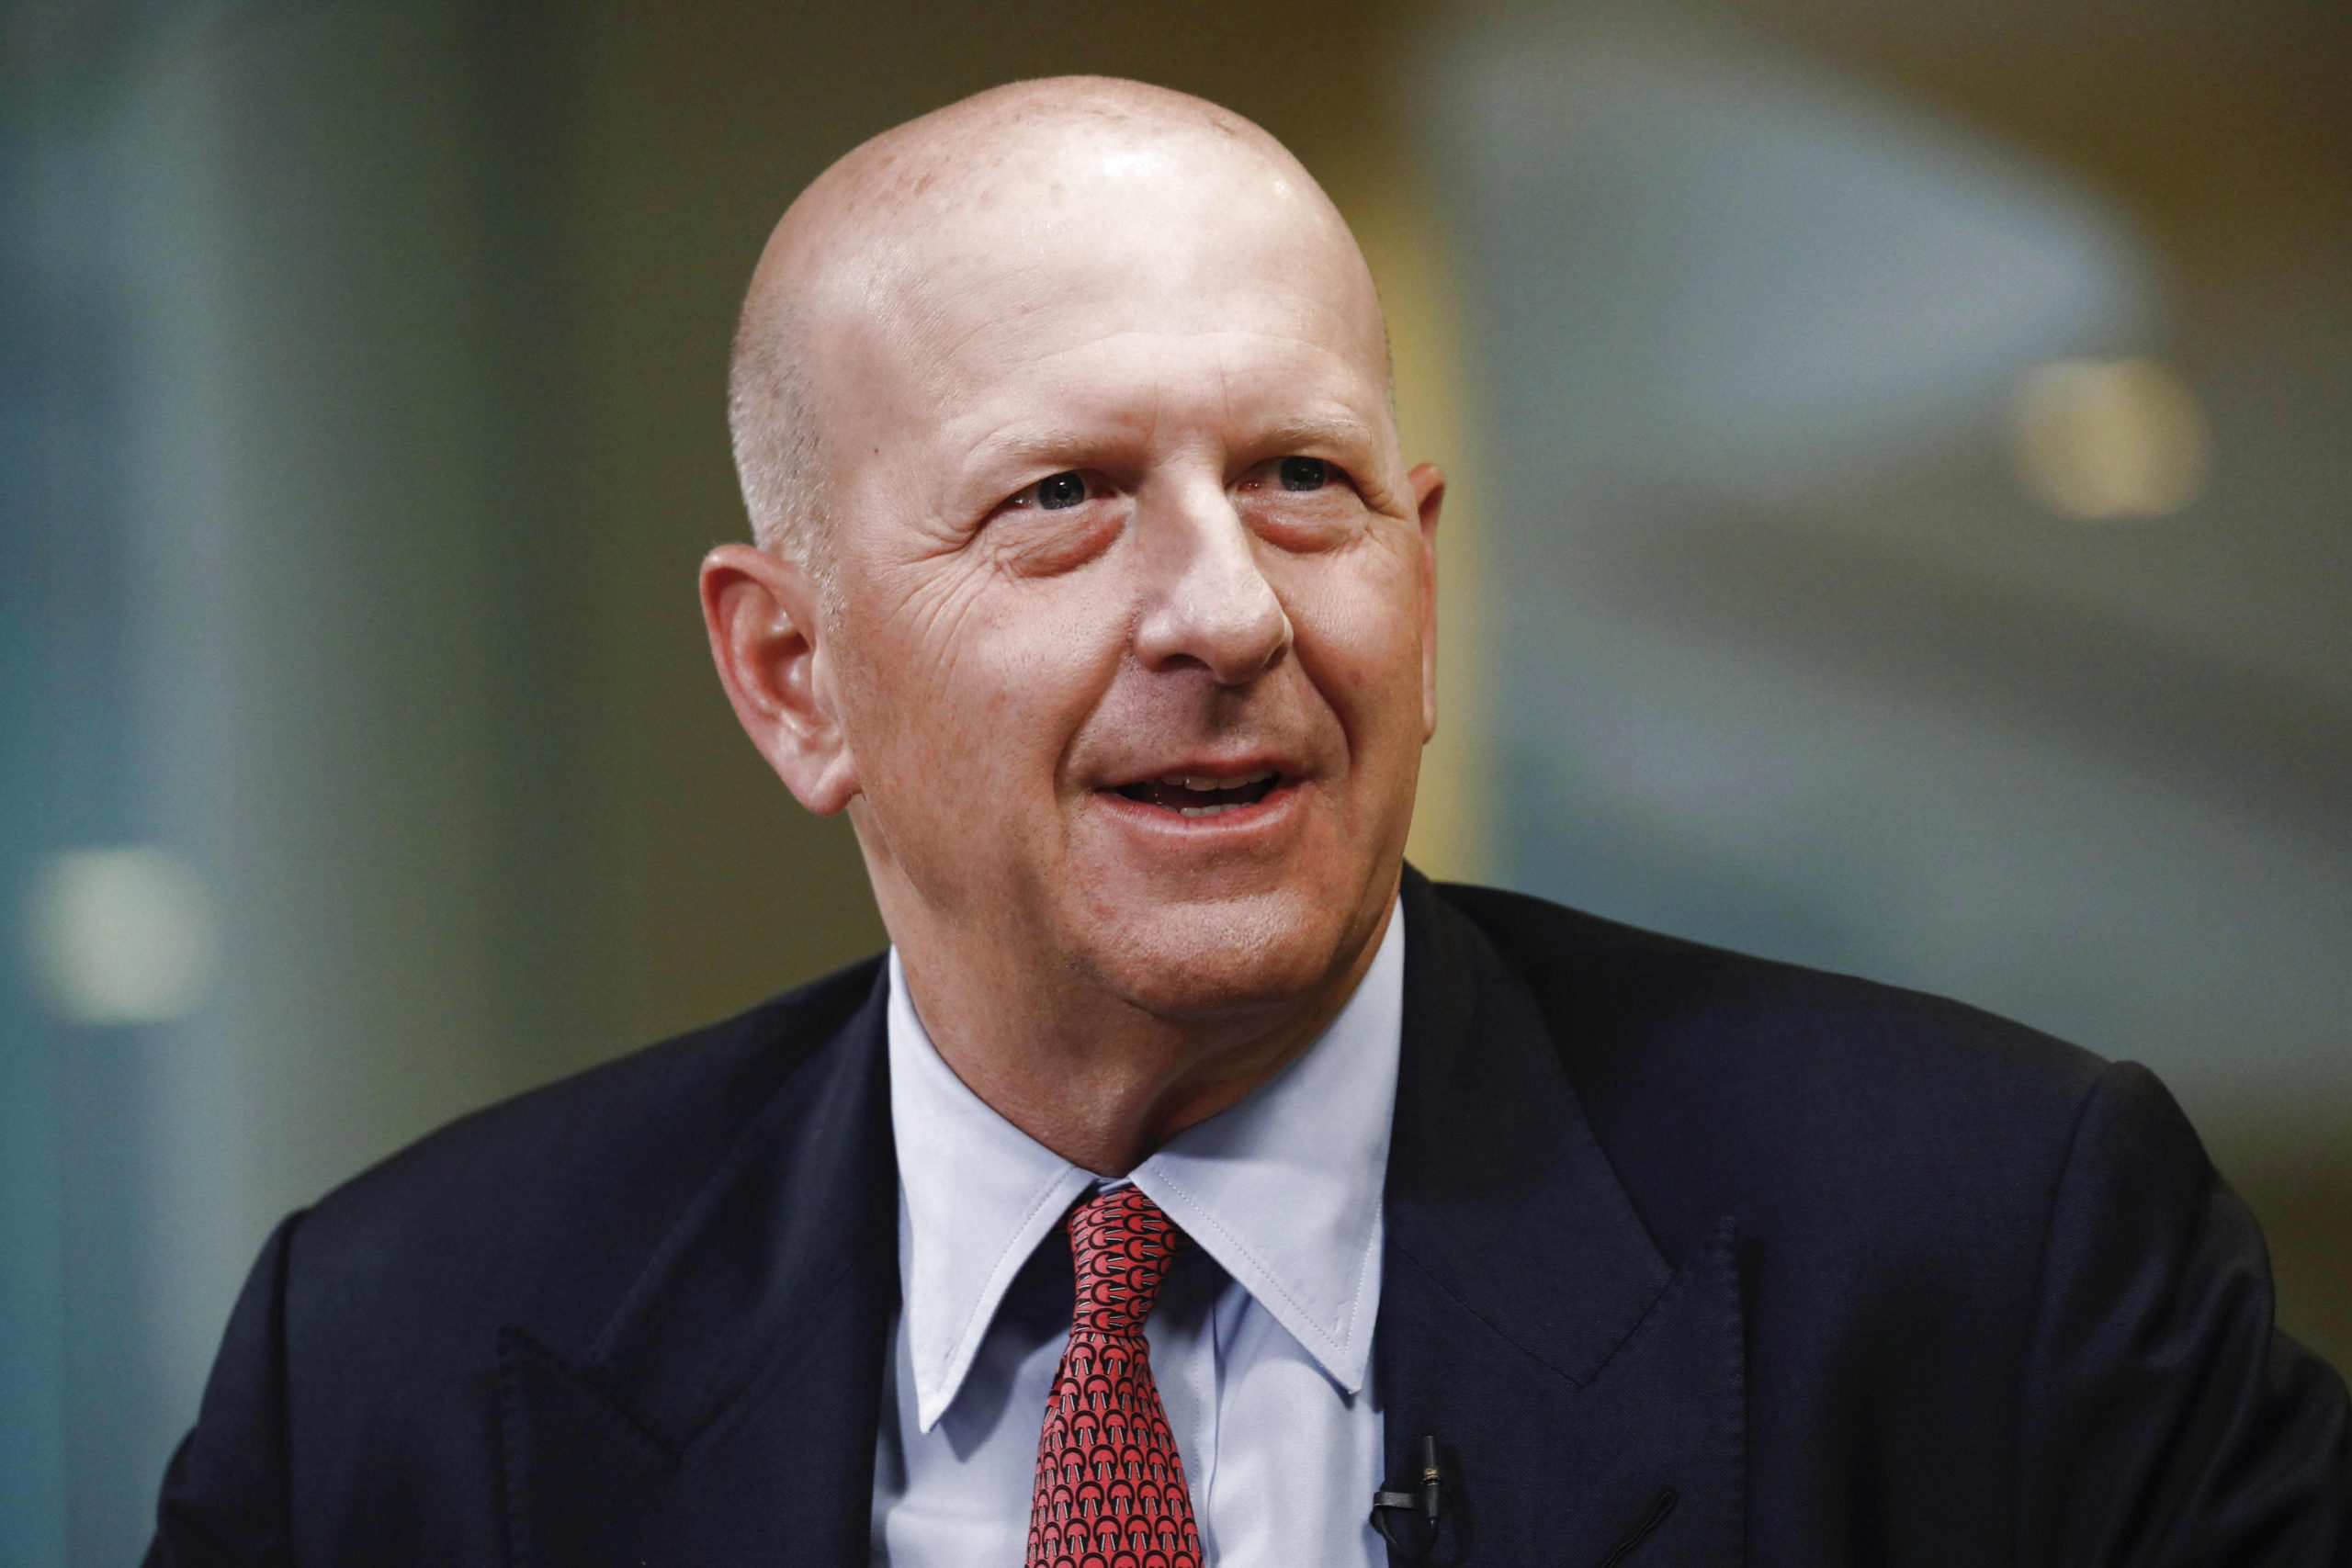 Goldman's earnings blow past estimates as investment banking revenue boosted by strong IPO market